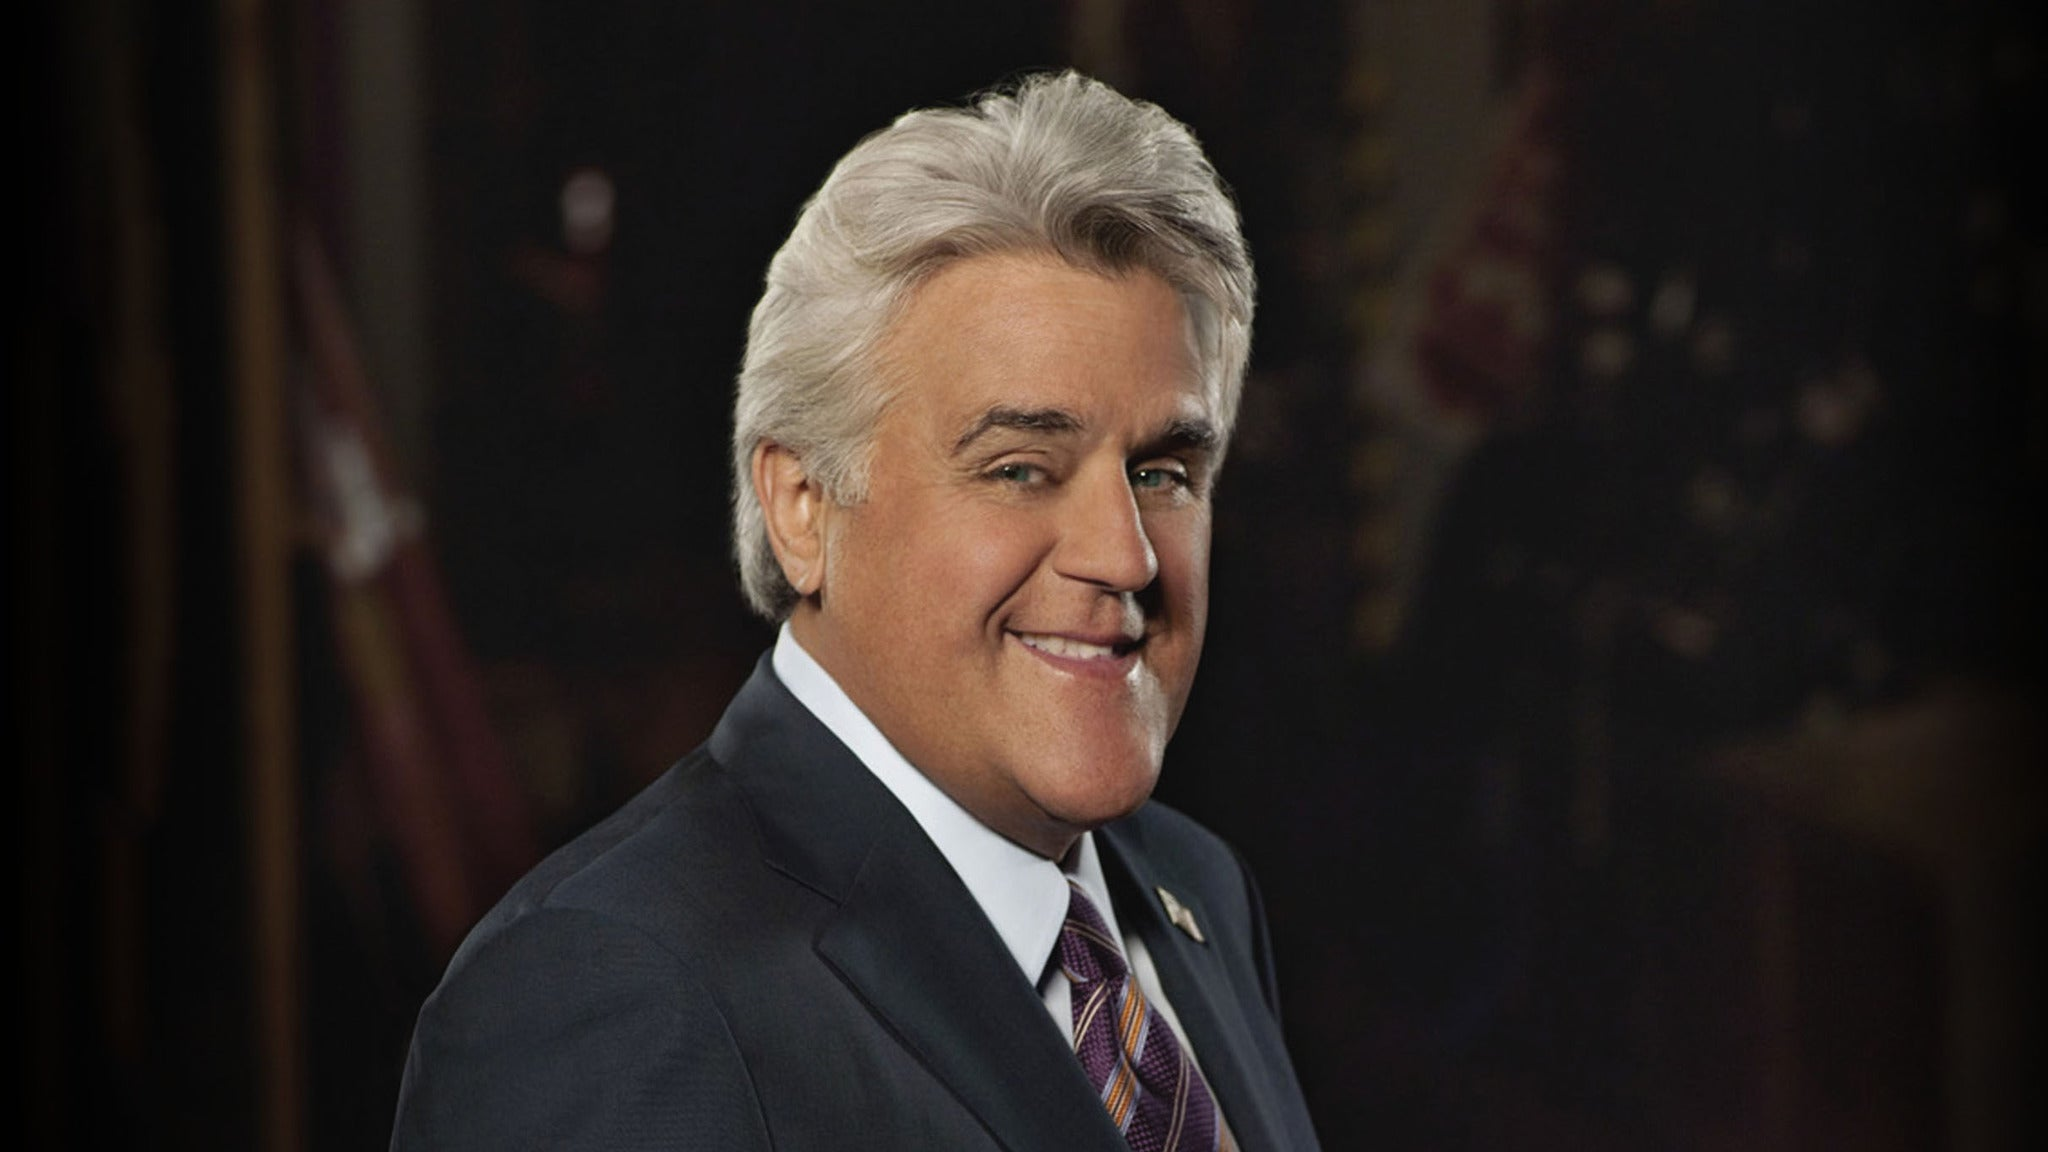 SORRY, THIS EVENT IS NO LONGER ACTIVE<br>Jay Leno at McCallum Theatre - Palm Desert, CA 92260